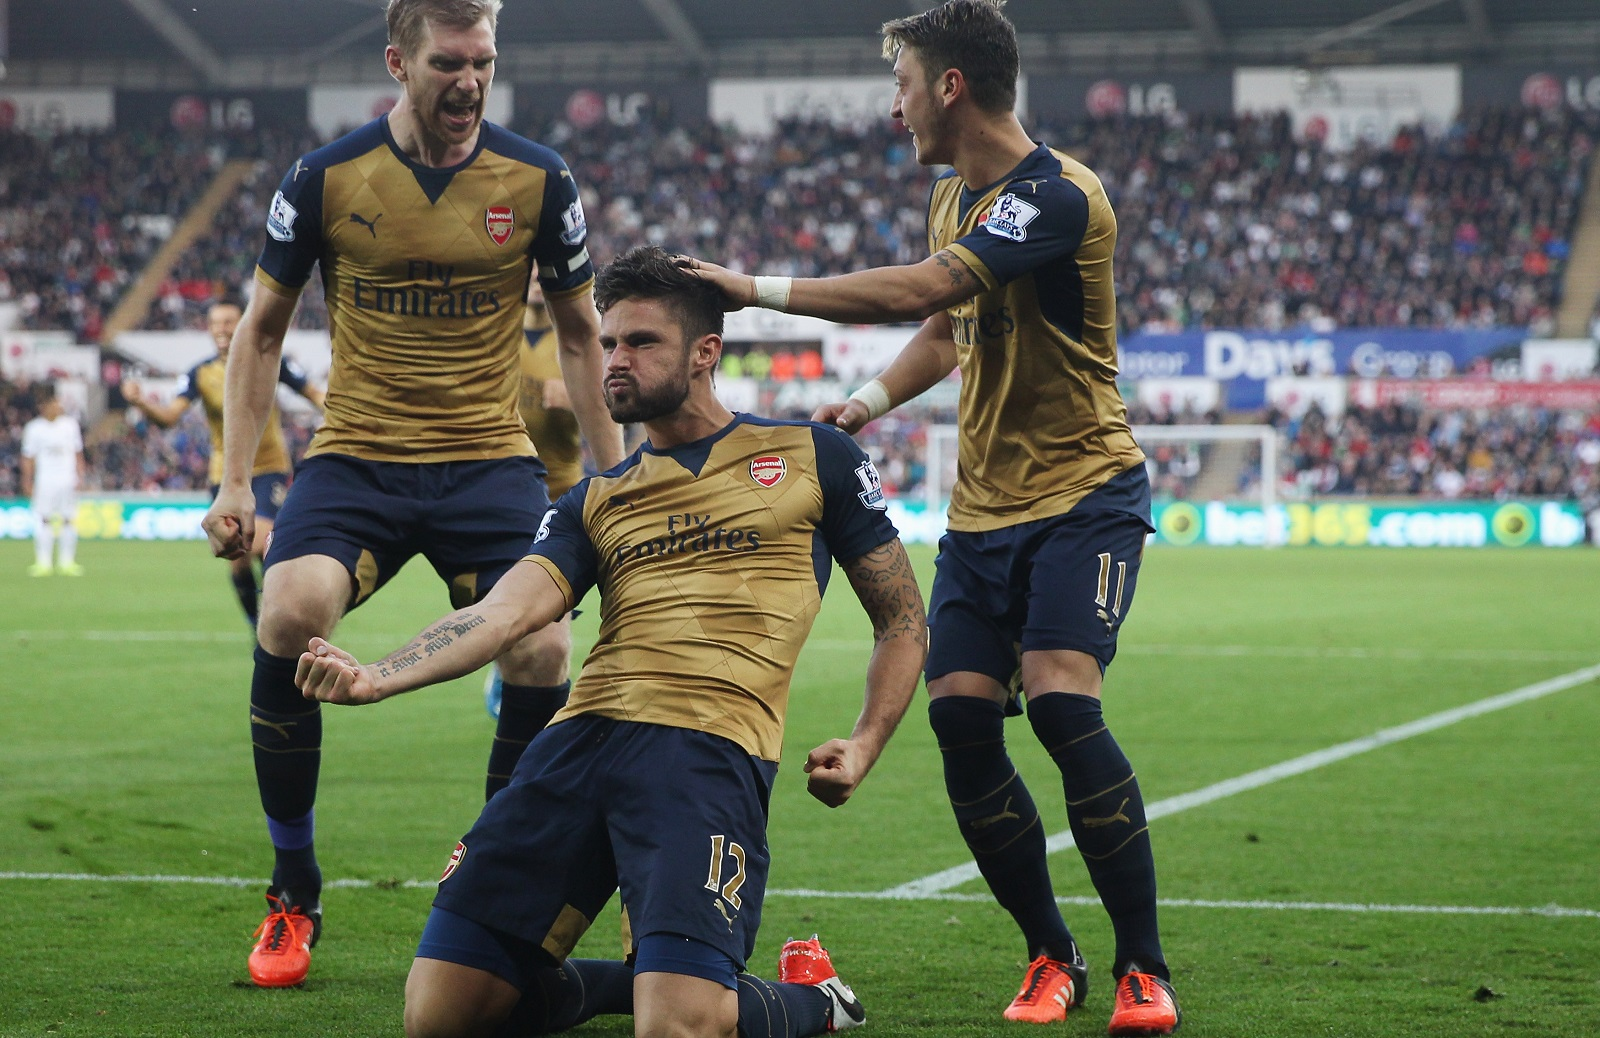 Olivier Giroud, middle, has been red-hot of late for Arsenal. (Getty Images)